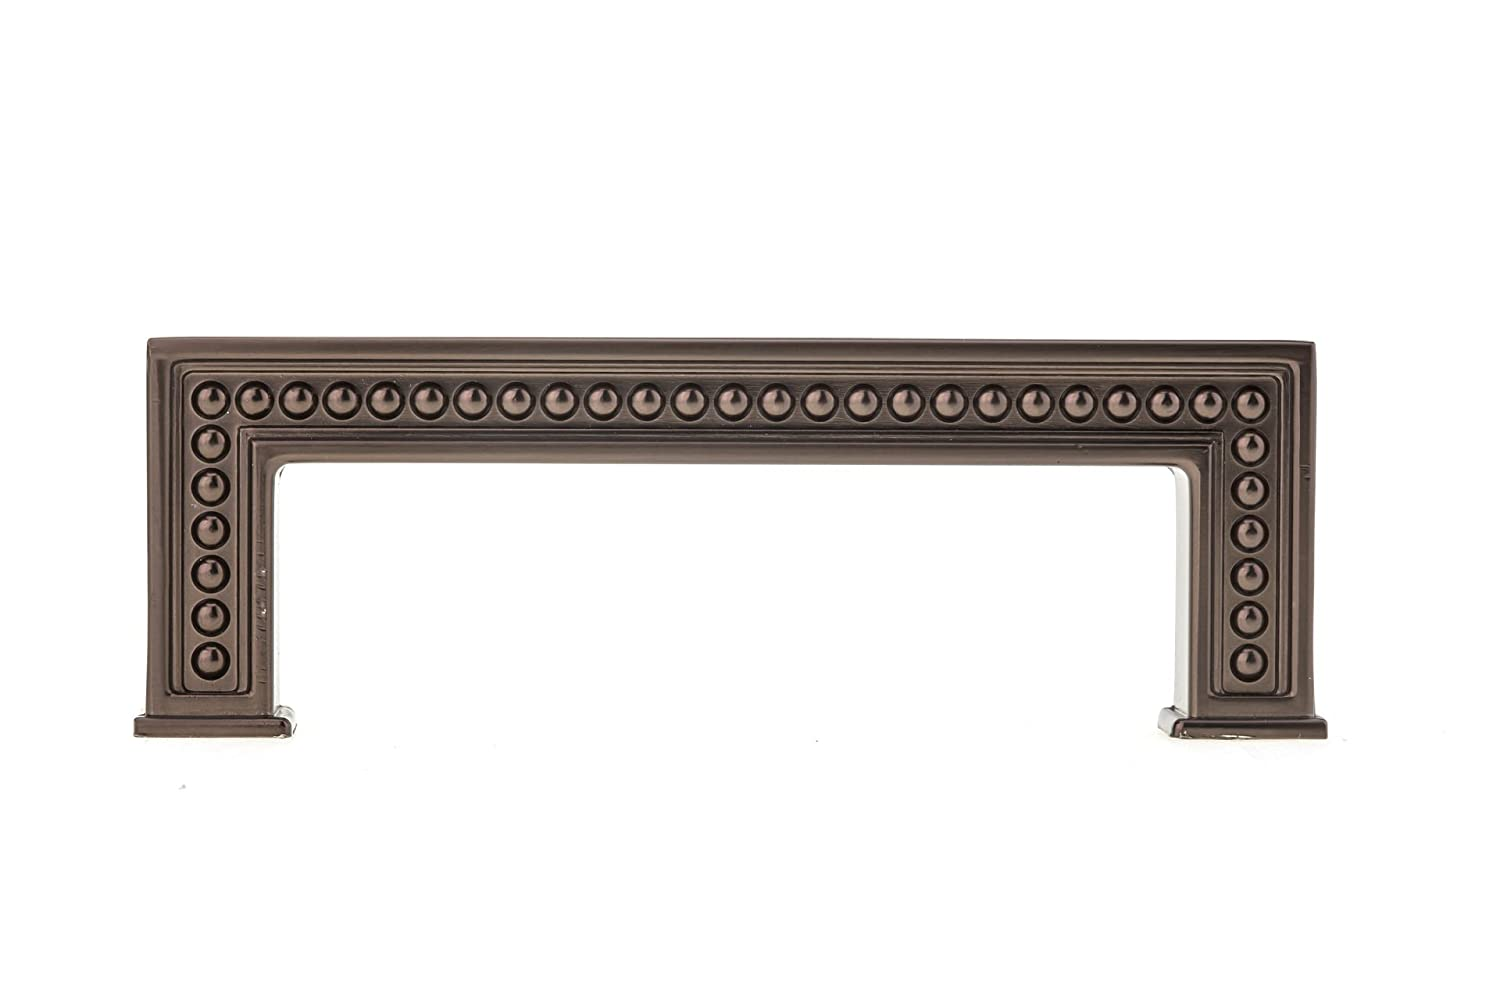 Transitional Metal Pull - Honey Bronze  Finish Richelieu Hardware BP879596HBRZ 8795-3 25//32 in 96 mm